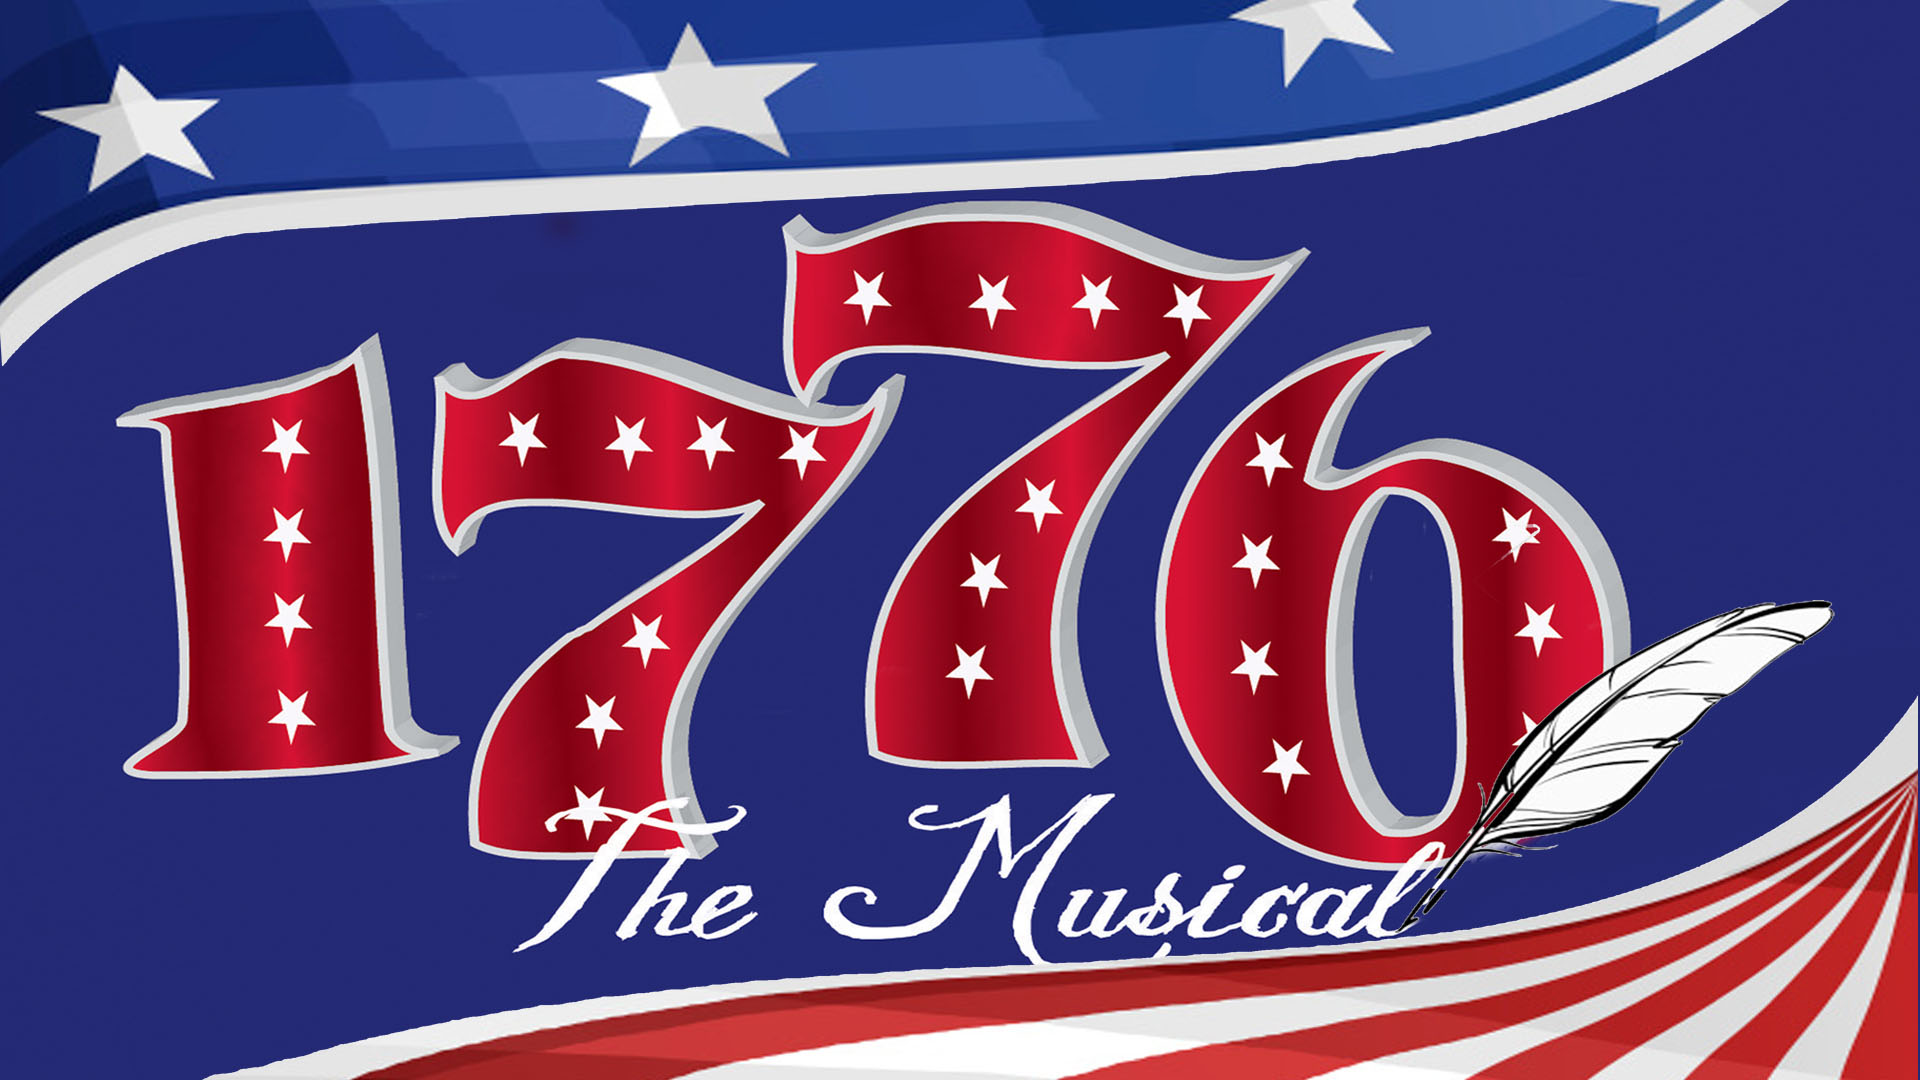 1776 logo for widescreen